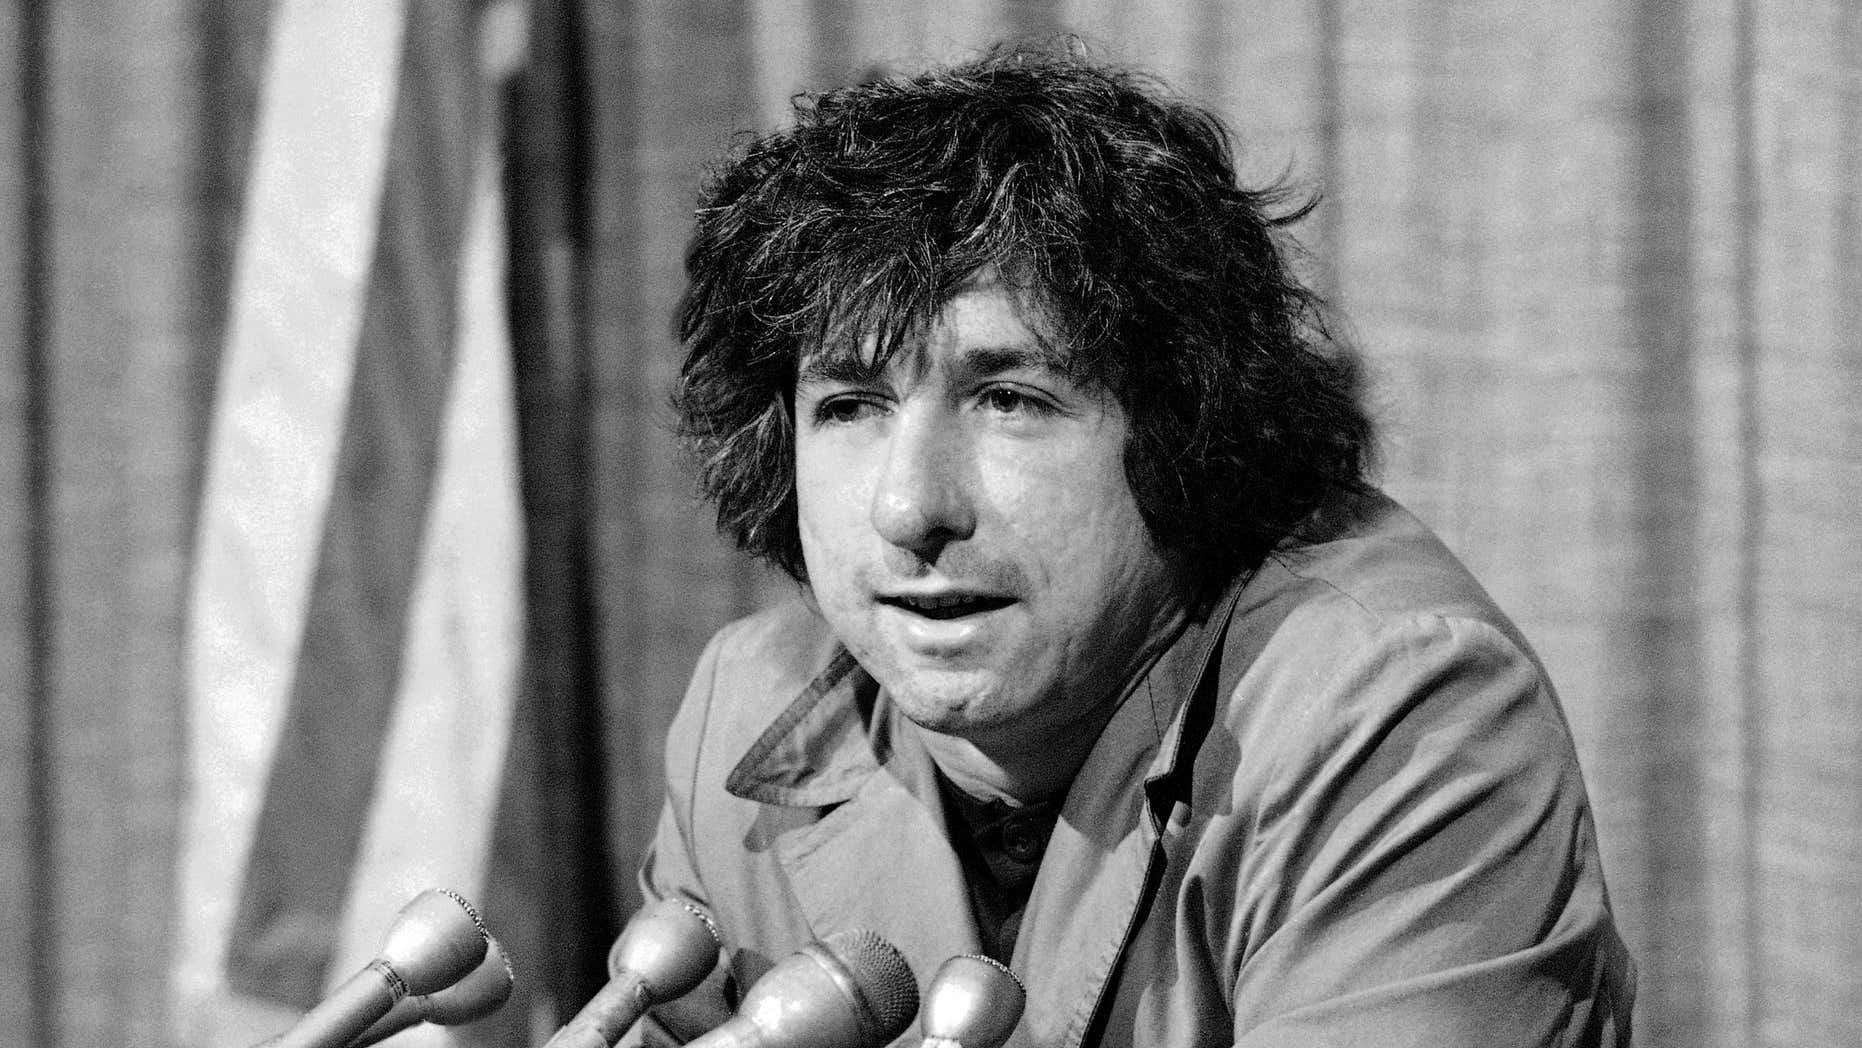 FILE - In this Dec. 6, 1973 file photo, political activist Tom Hayden, husband of Jane Fonda, tells newsmen in Los Angeles that he believes public support was partially responsible for the decision not to send him and others of the Chicago 7 to jail for contempt.